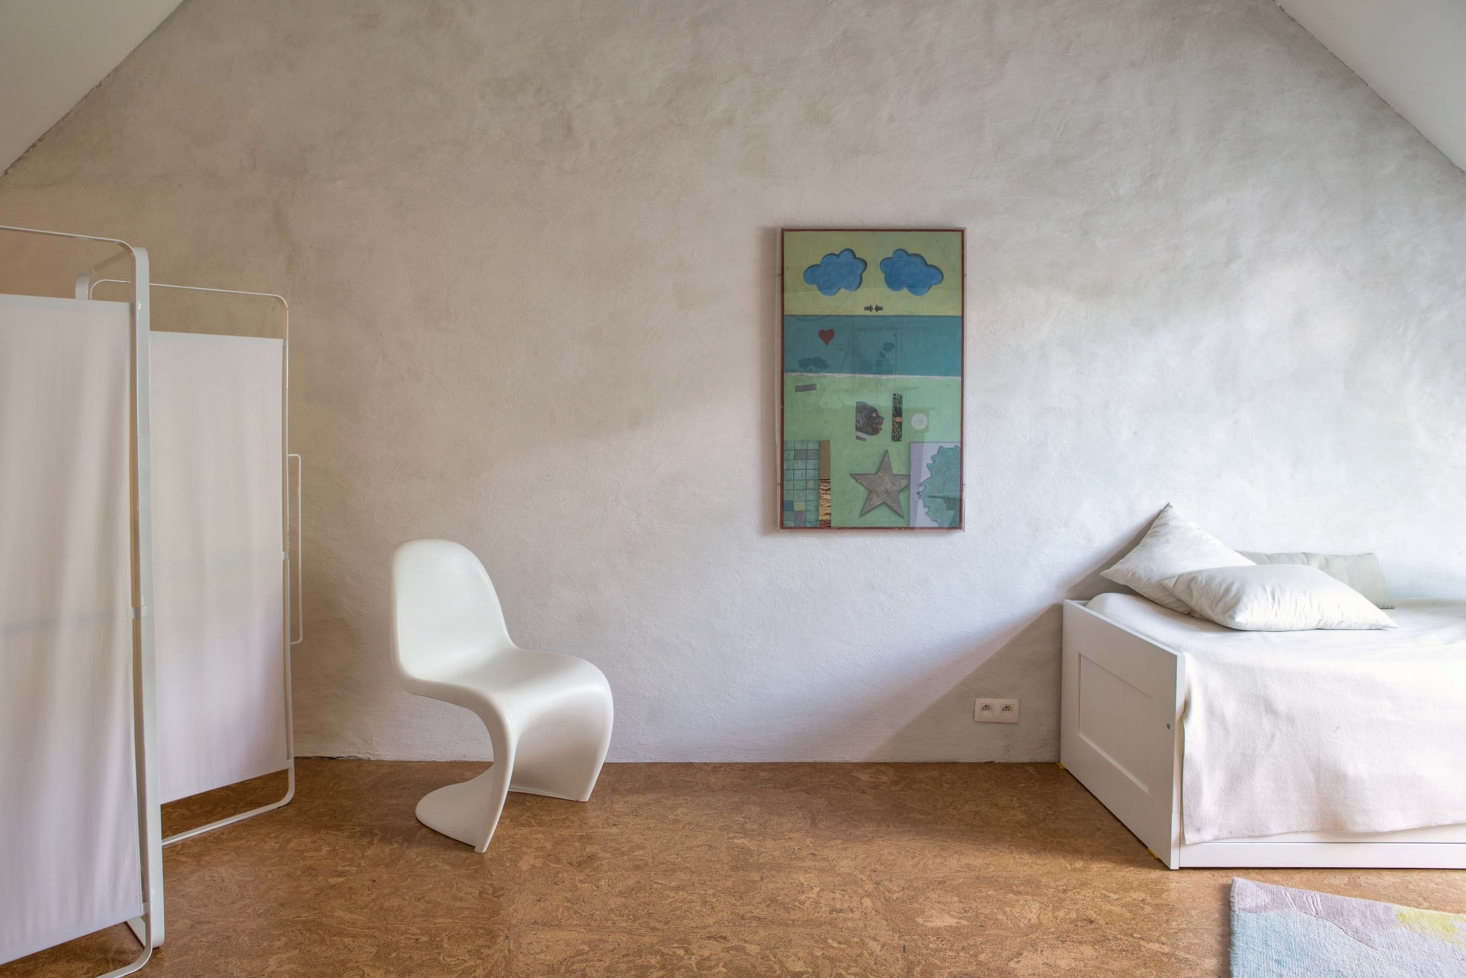 The upstairs loft has two bedrooms and a bathroom with cork flooring and plaster walls. Shown here is the Serax Daysign Folding Screen, a Verner Panton Chair, and an Ikea Brimnes Daybed.